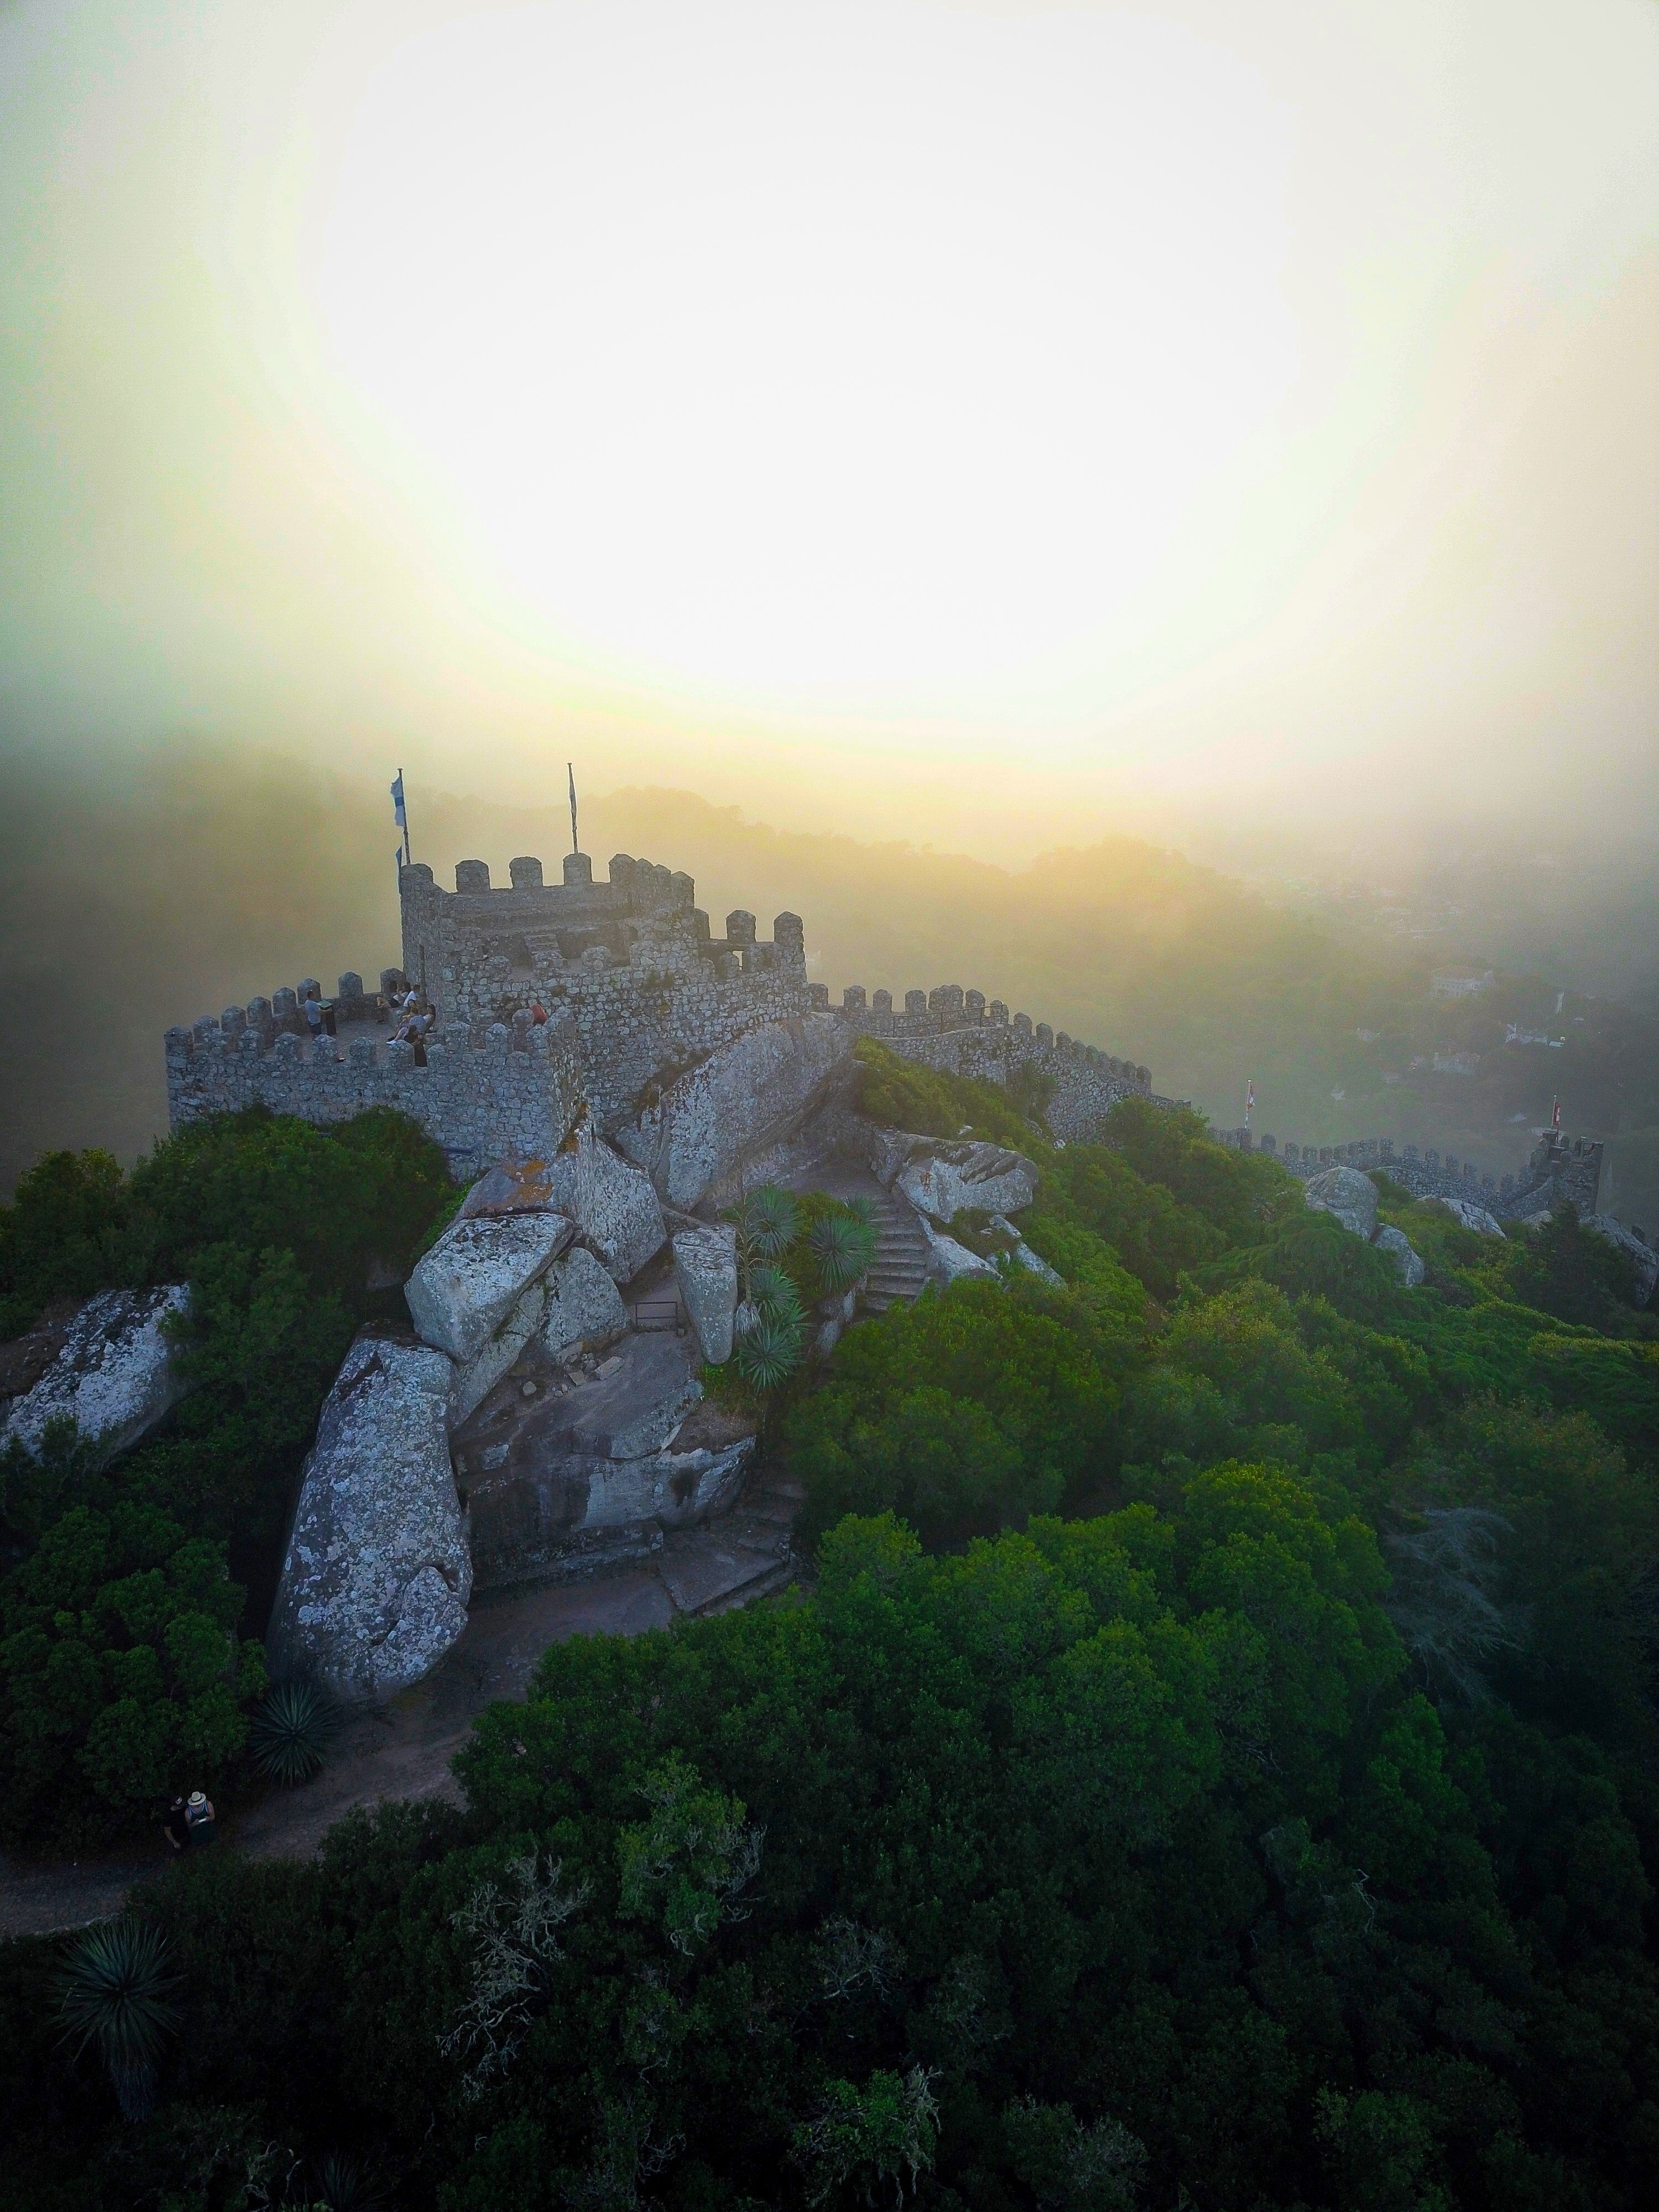 Hilltop Fortress, Sintra, Portugal